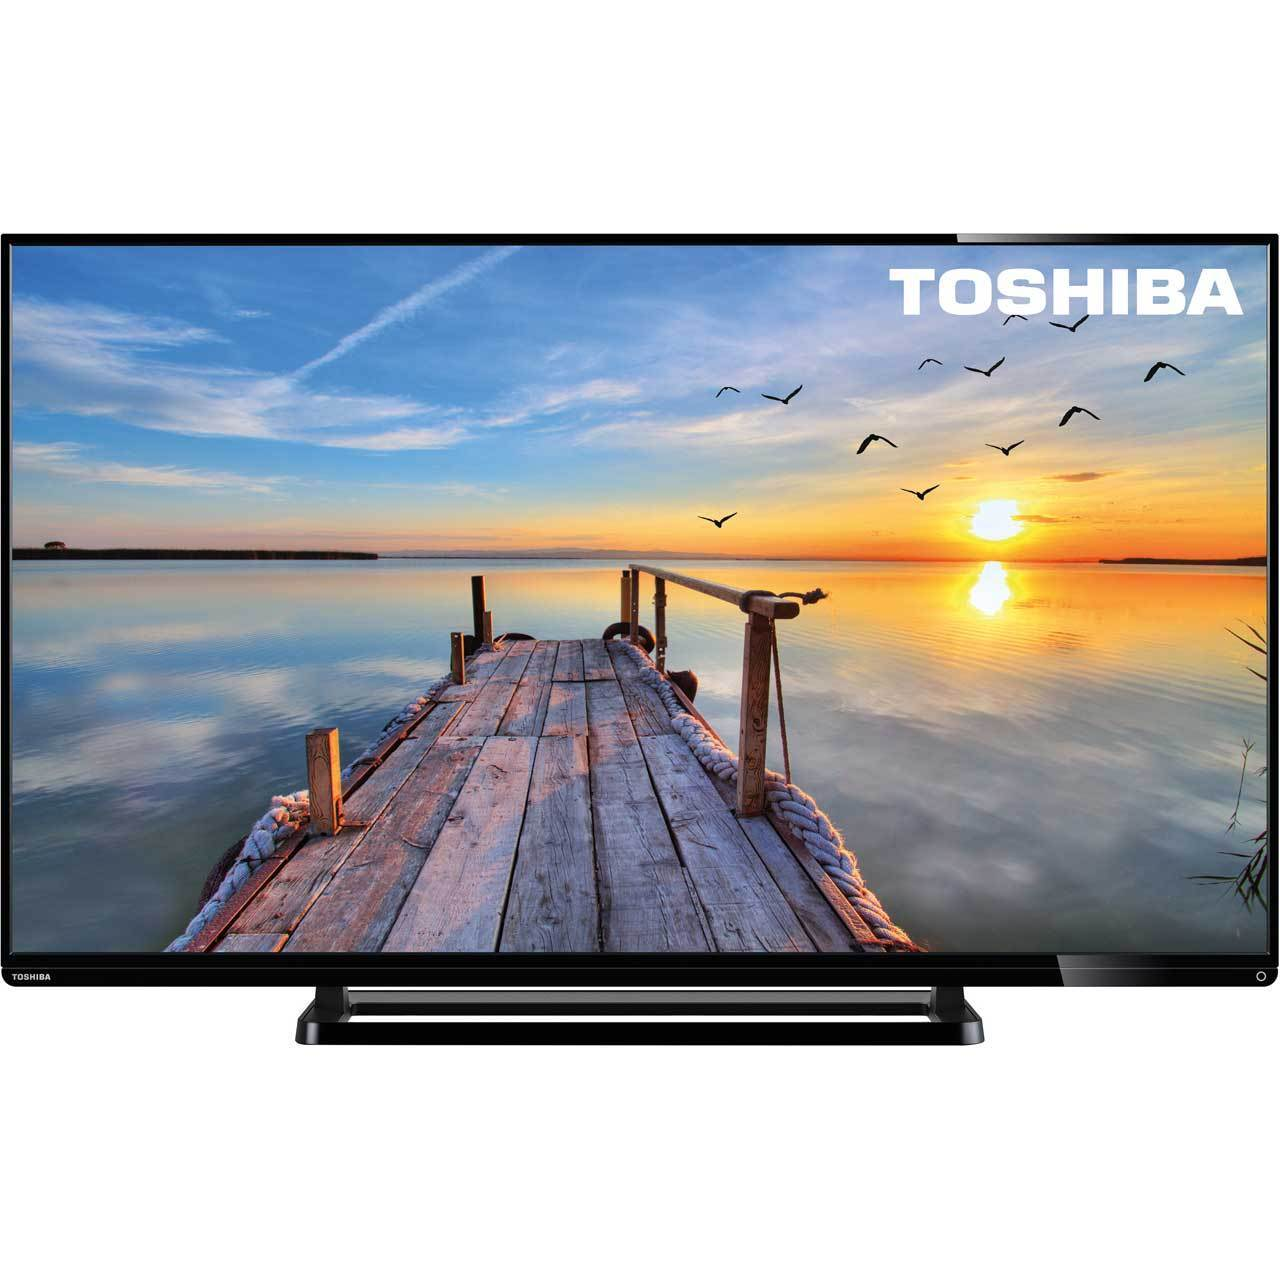 "Toshiba 50L2556 LED TV 50"" Full HD Freeview HD USB Playback"